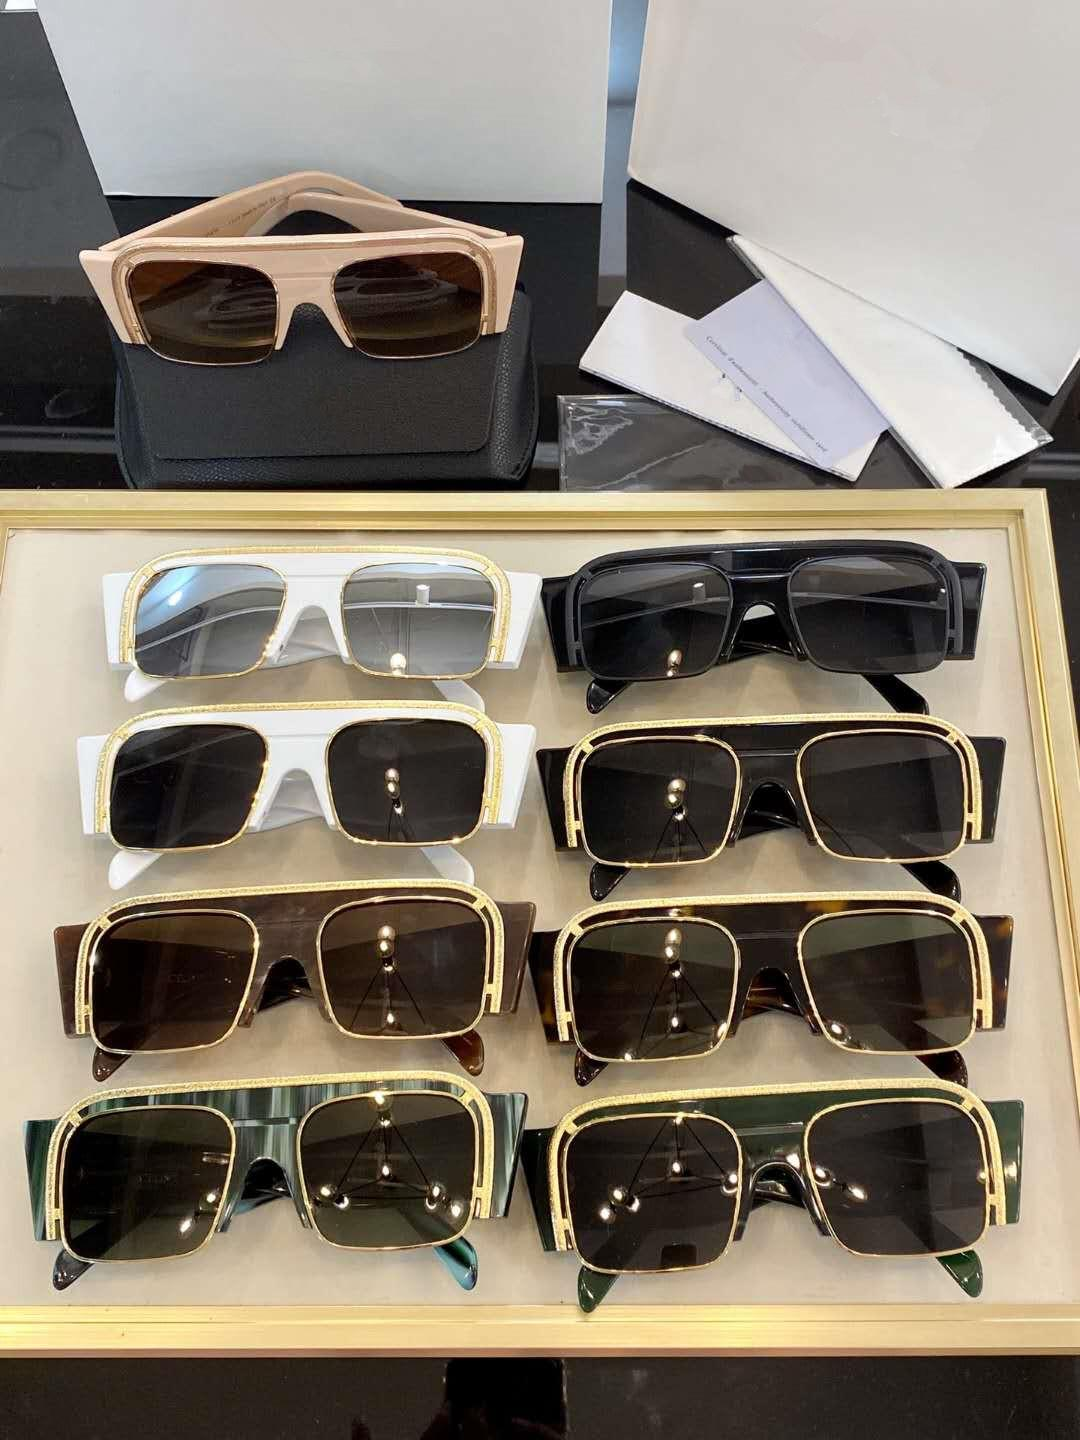 New Plate Three-dimensional Sunglasses Imported From Italy High-definition Lenses Novel Eyewear All-match Simple And High-quality Original E